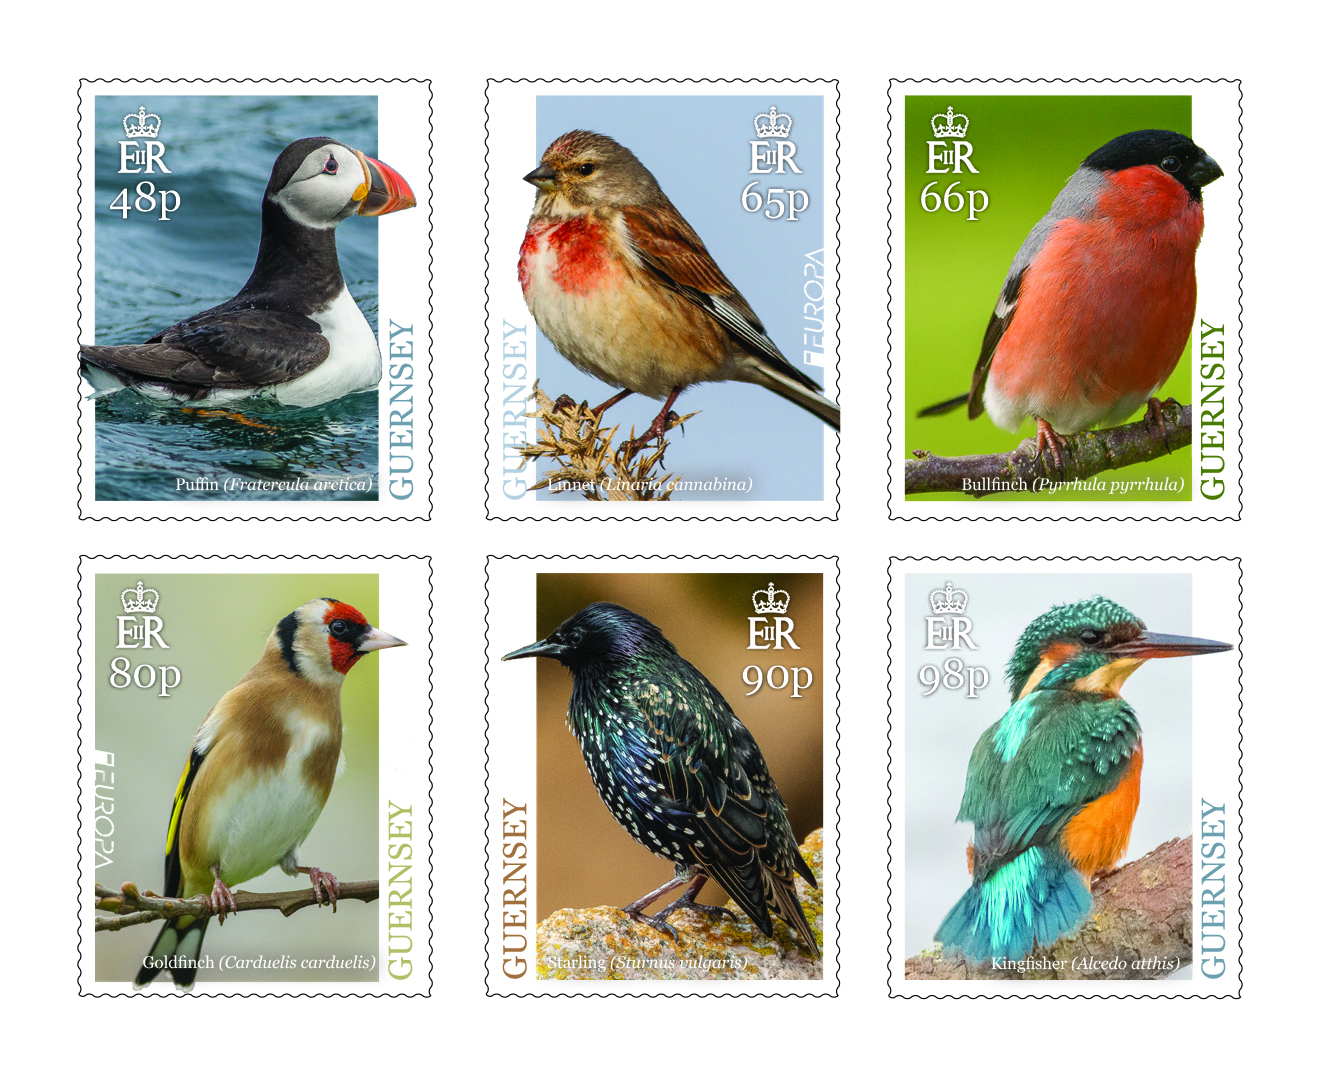 Europa stamps depict singing Bailiwick birds